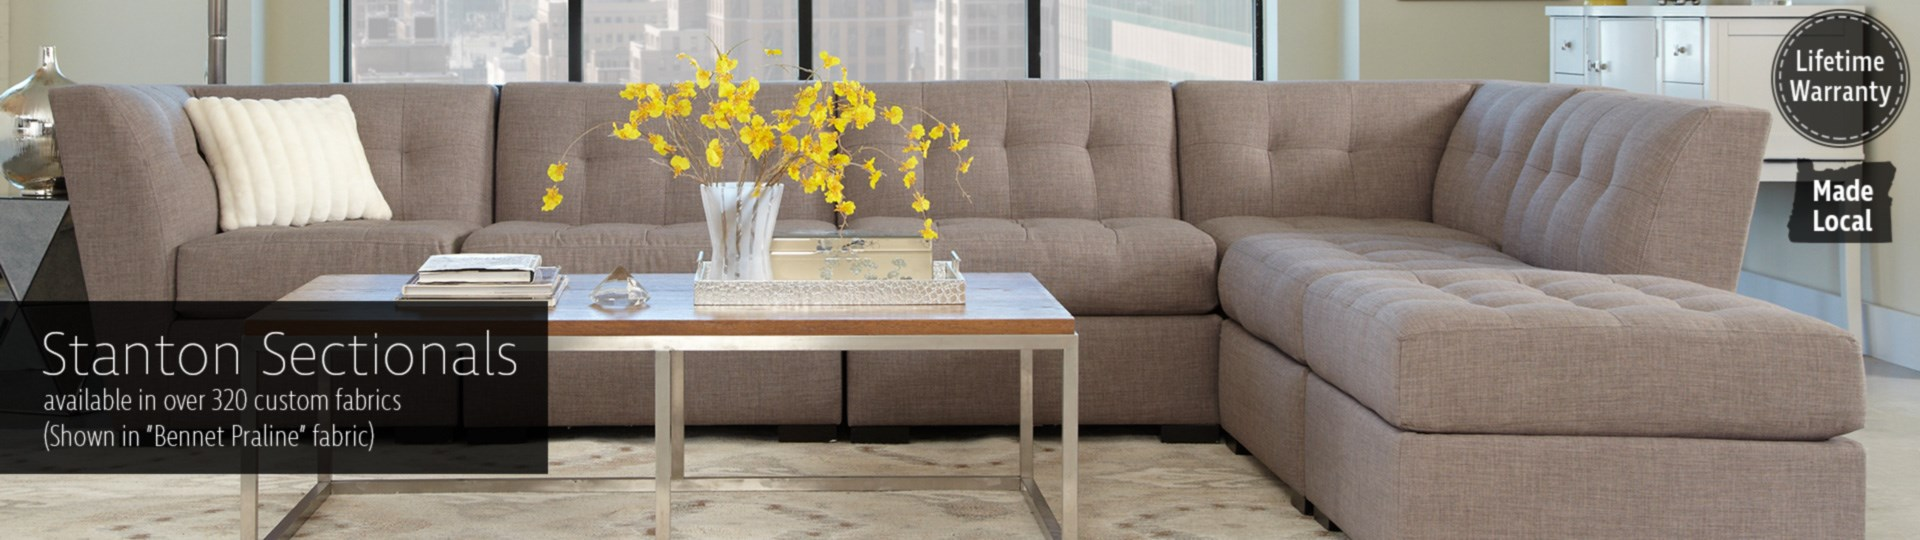 Stanton 356 sectional available in 320 custom fabrics